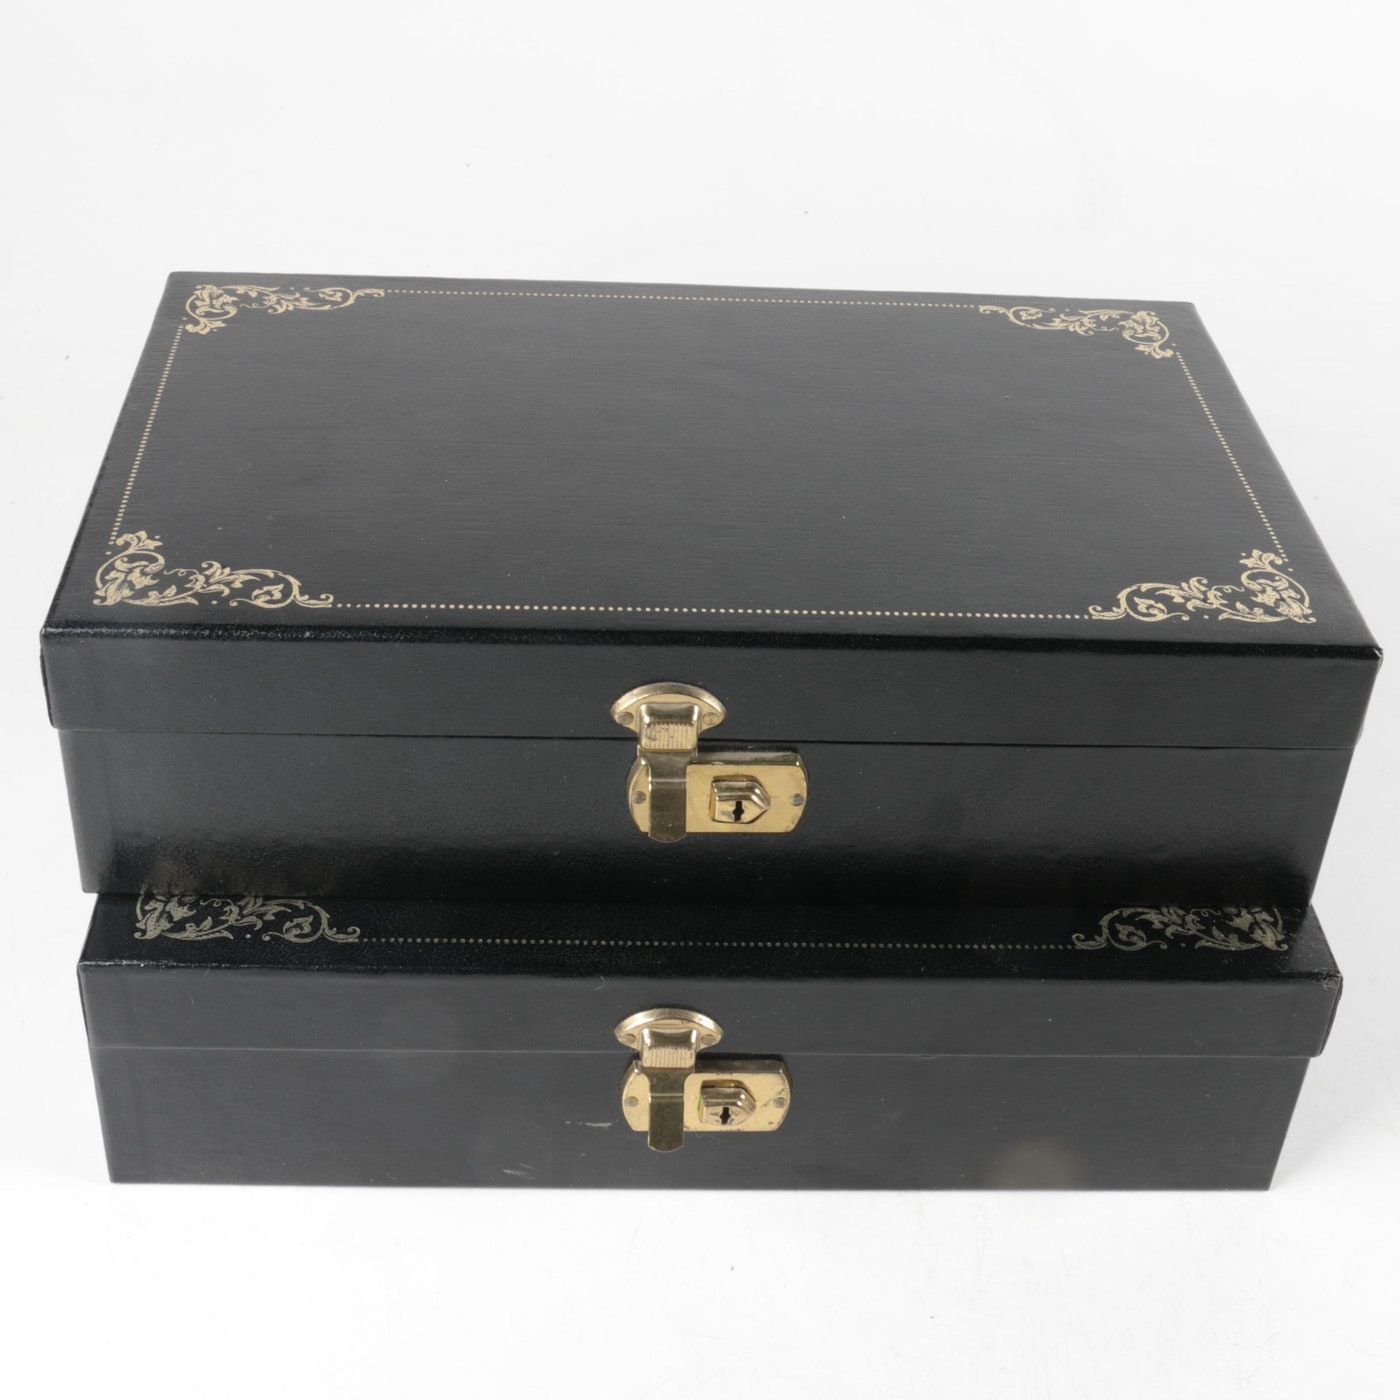 Faux leather jewelry boxes with key ebth for Jewelry box with key